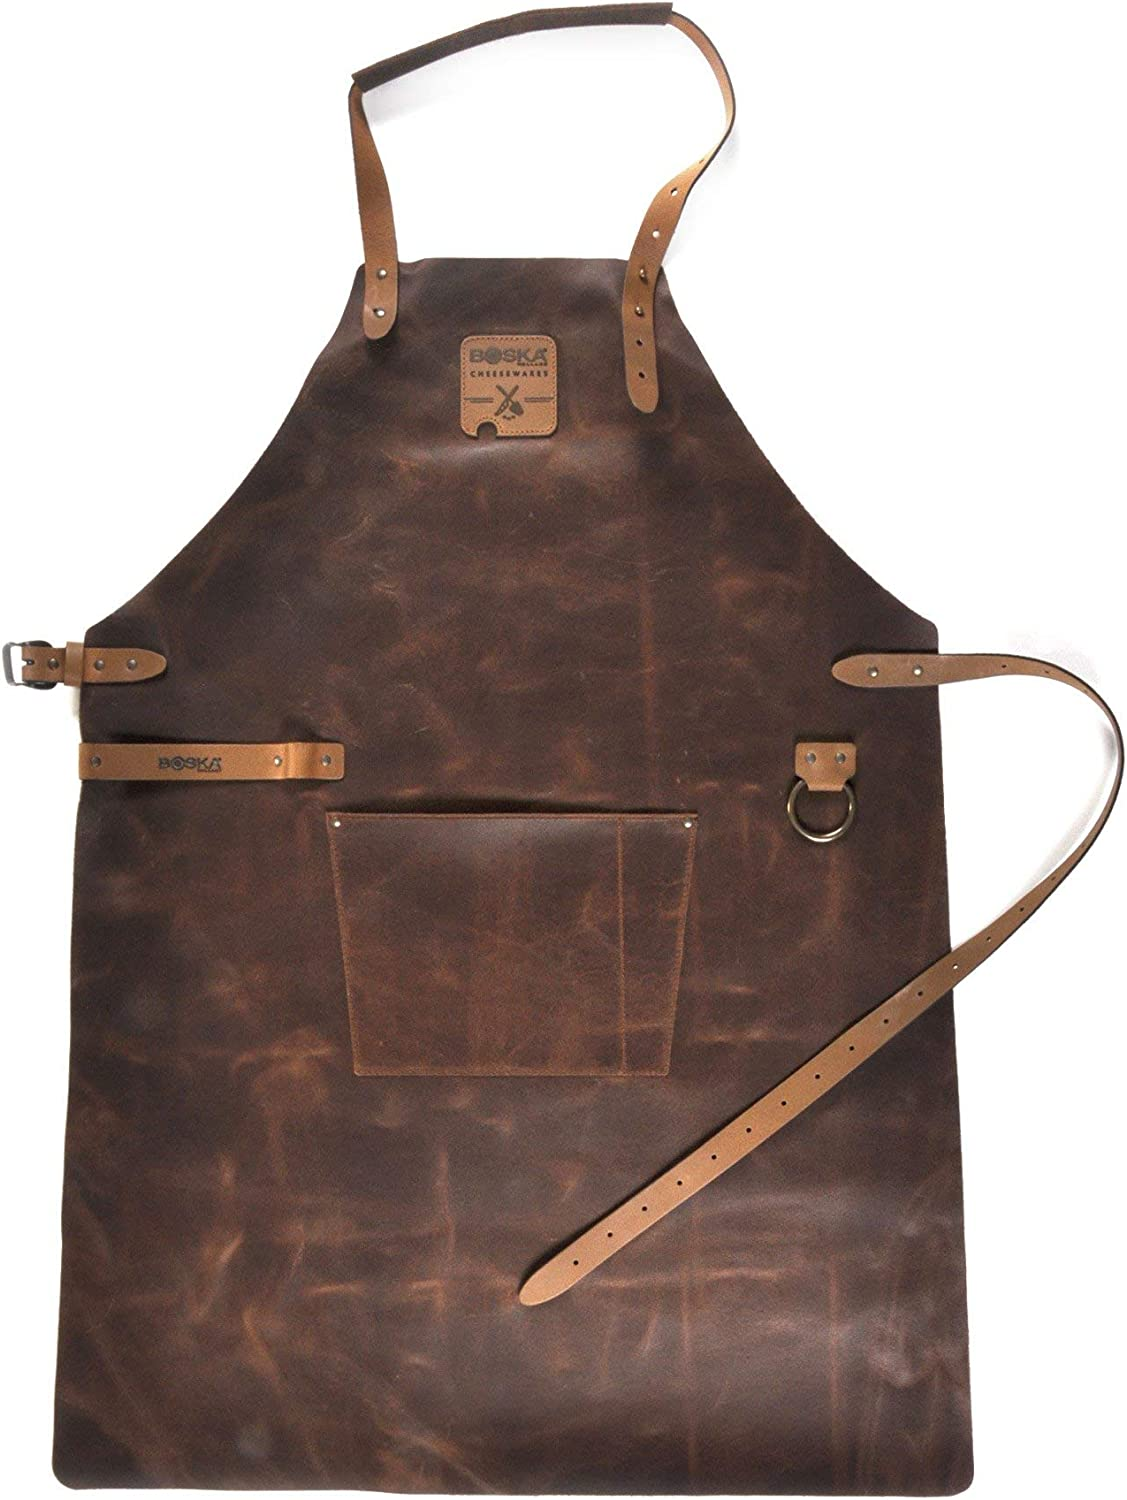 BOSKA 955050 Mr Smith Kitchen Apron, One Size Fits Most, Brown